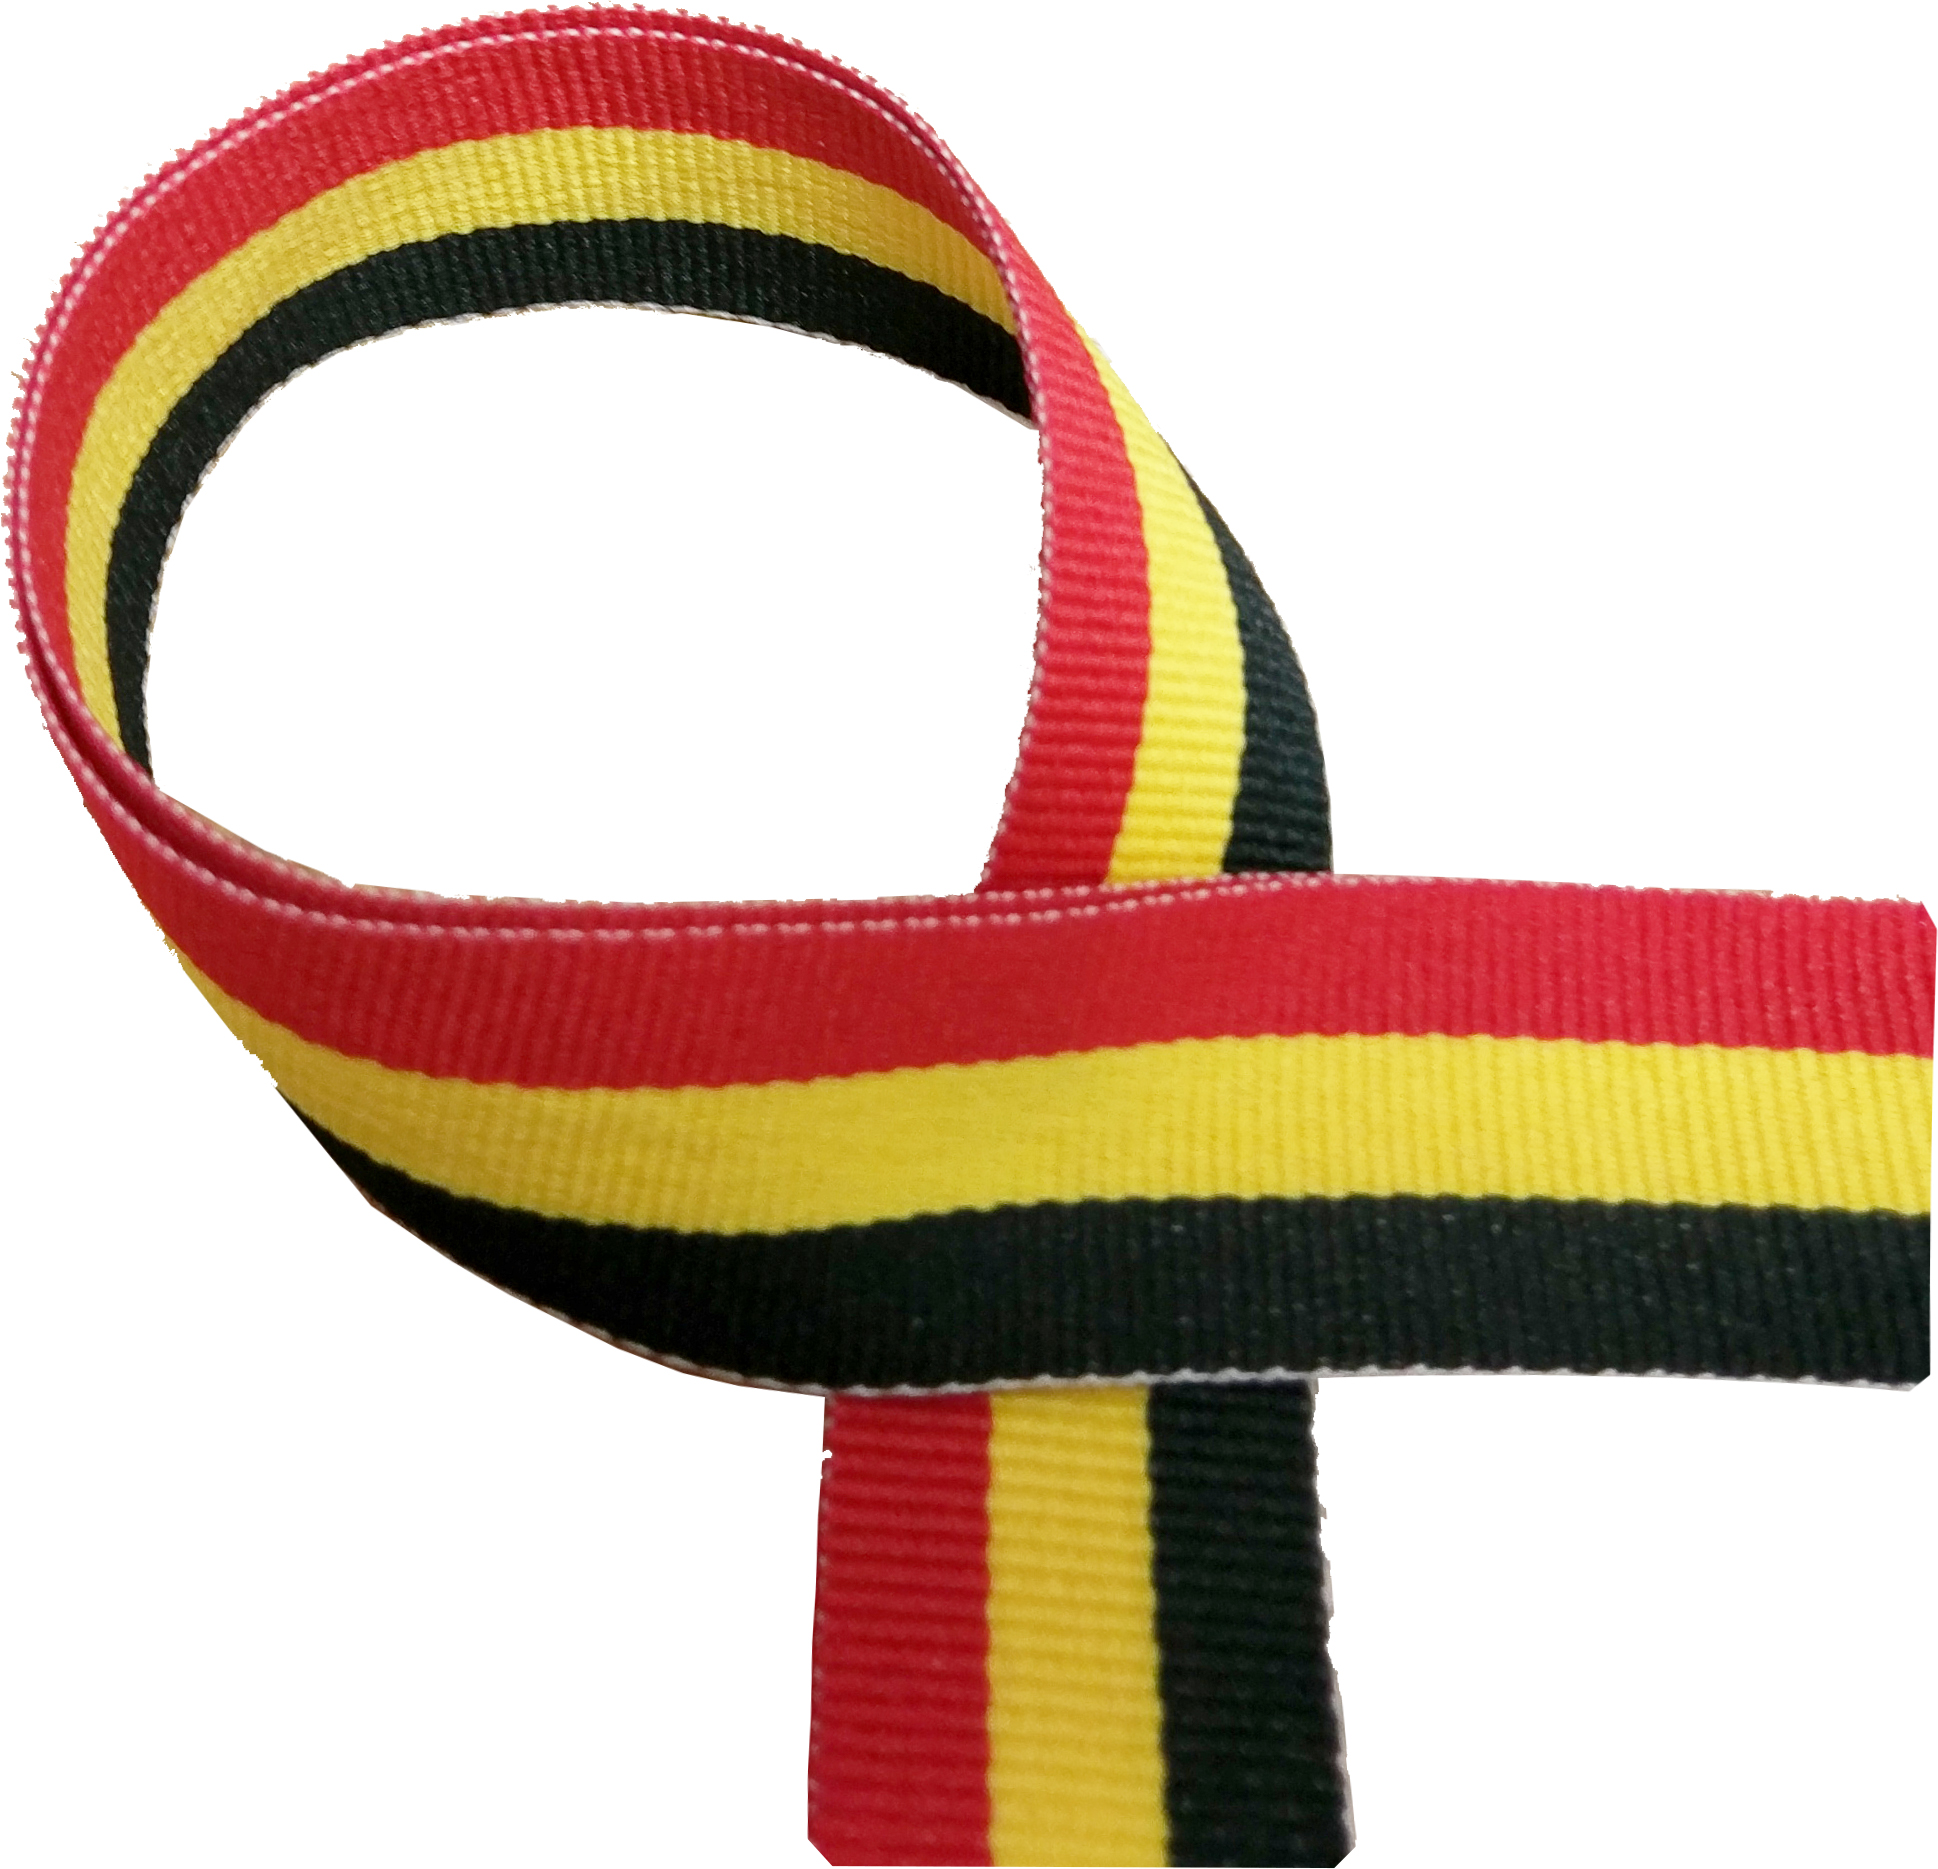 "Black, Yellow and Red Medal Ribbon 76cm (30"")"